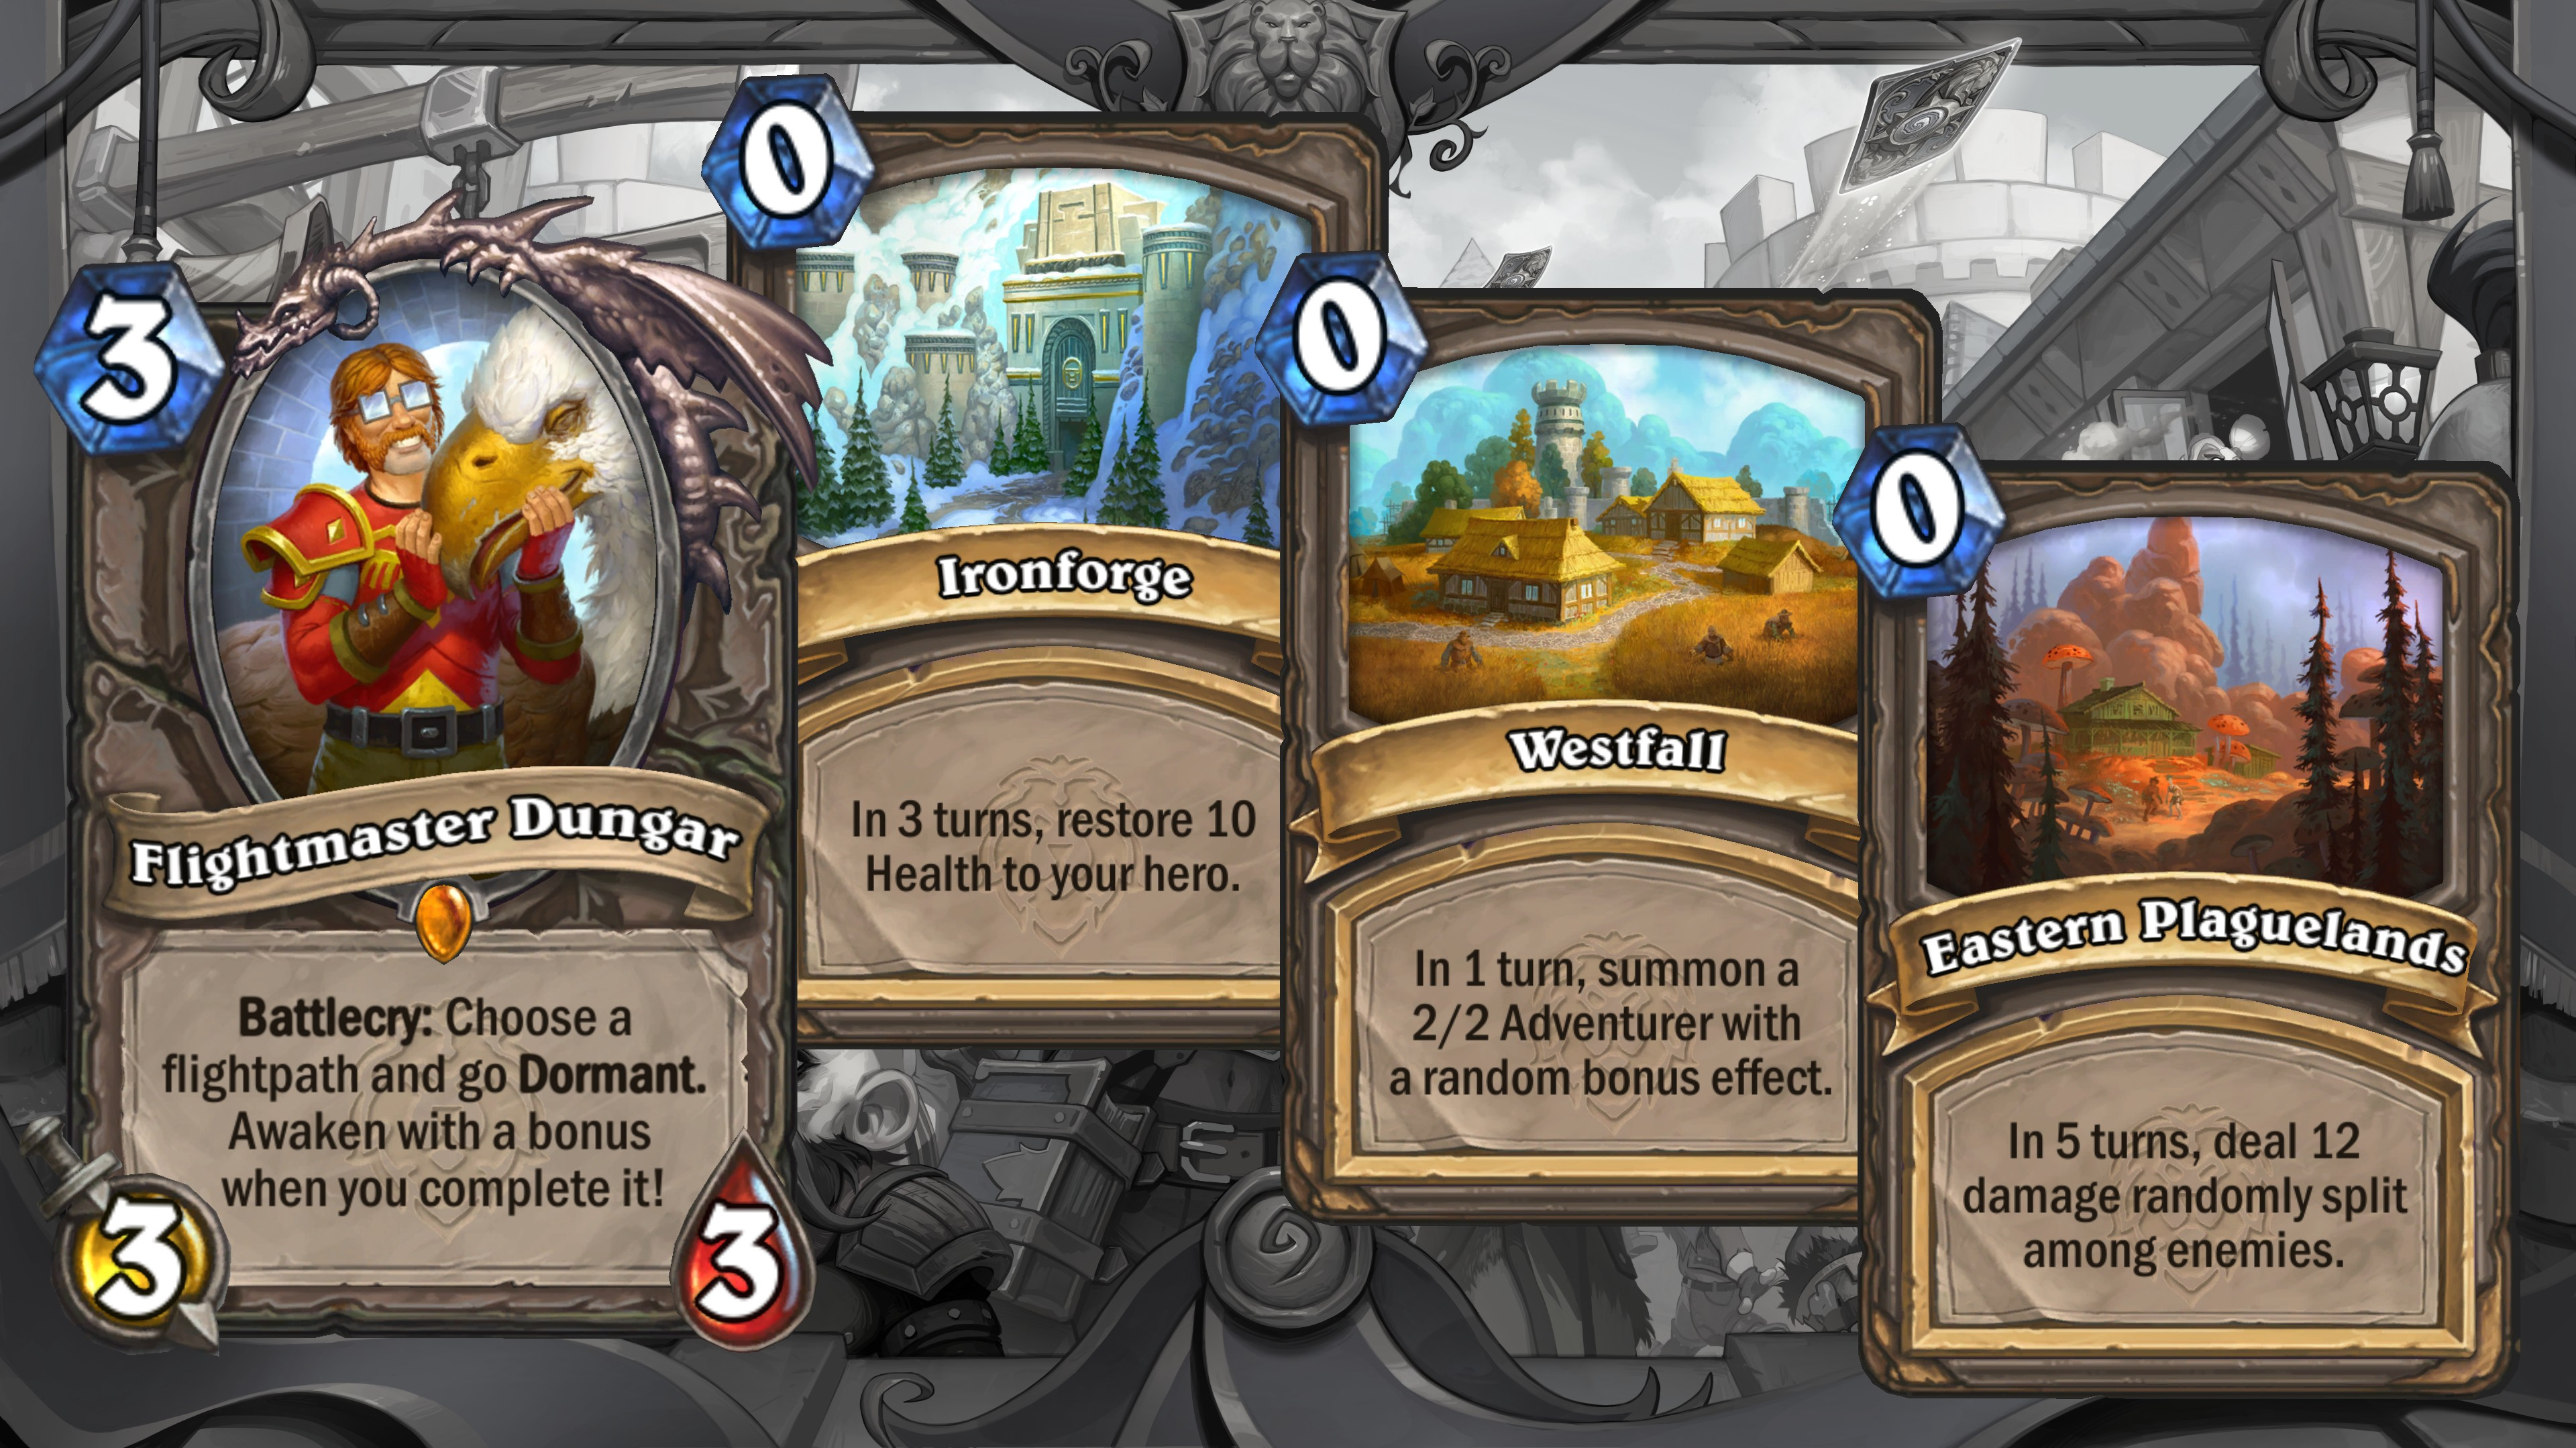 United in Stormwind announcement cards